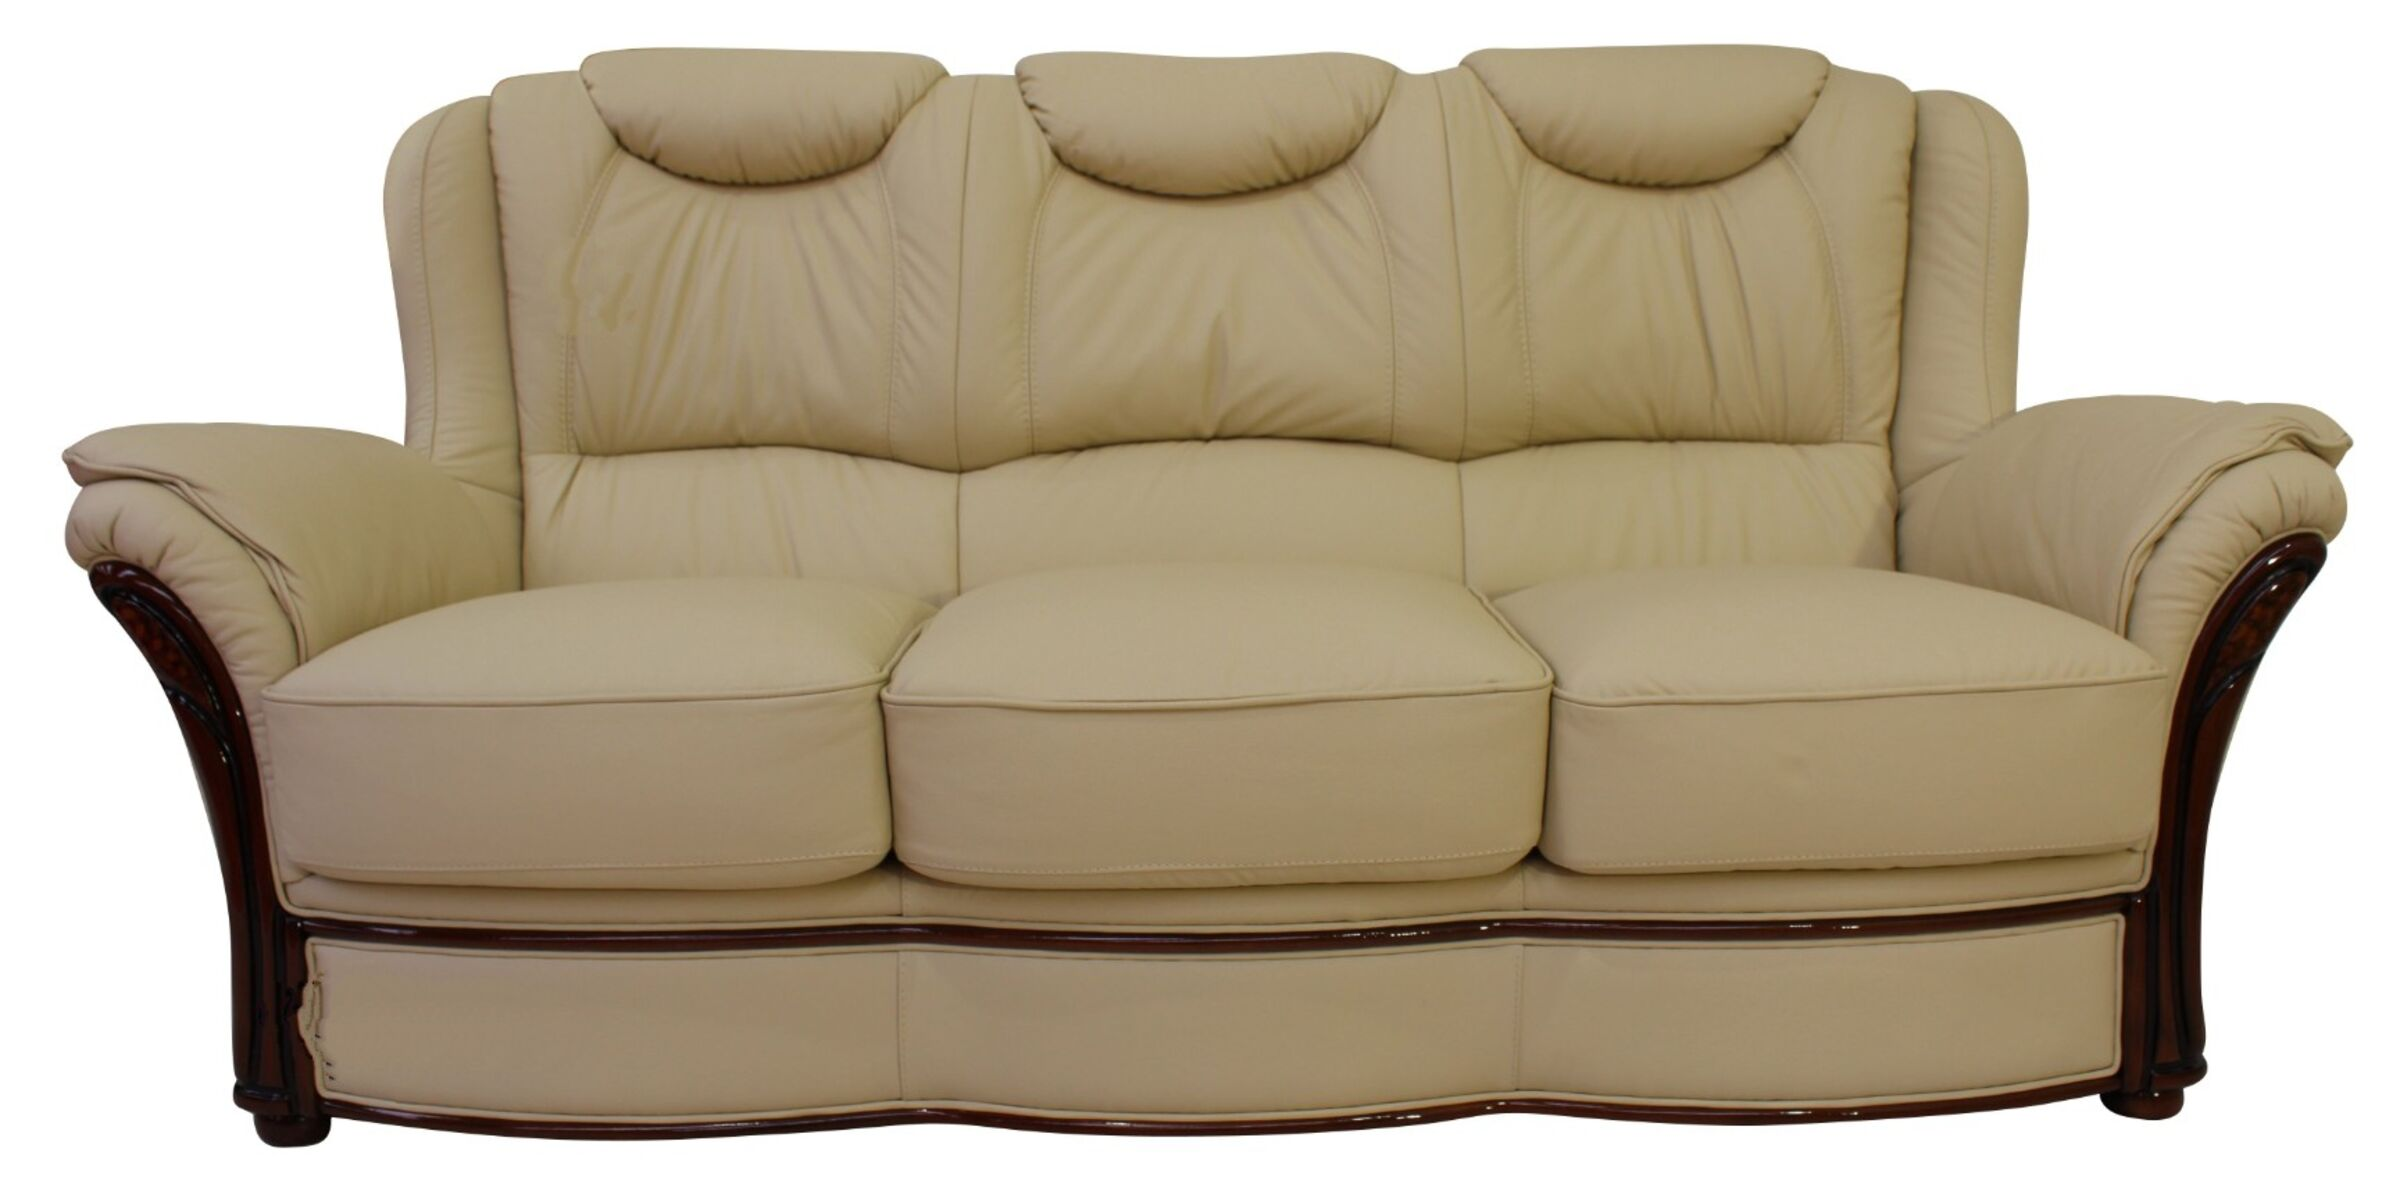 Montana 3 seater sofa settee genuine italian cream leather for Sofa 0 interest free credit